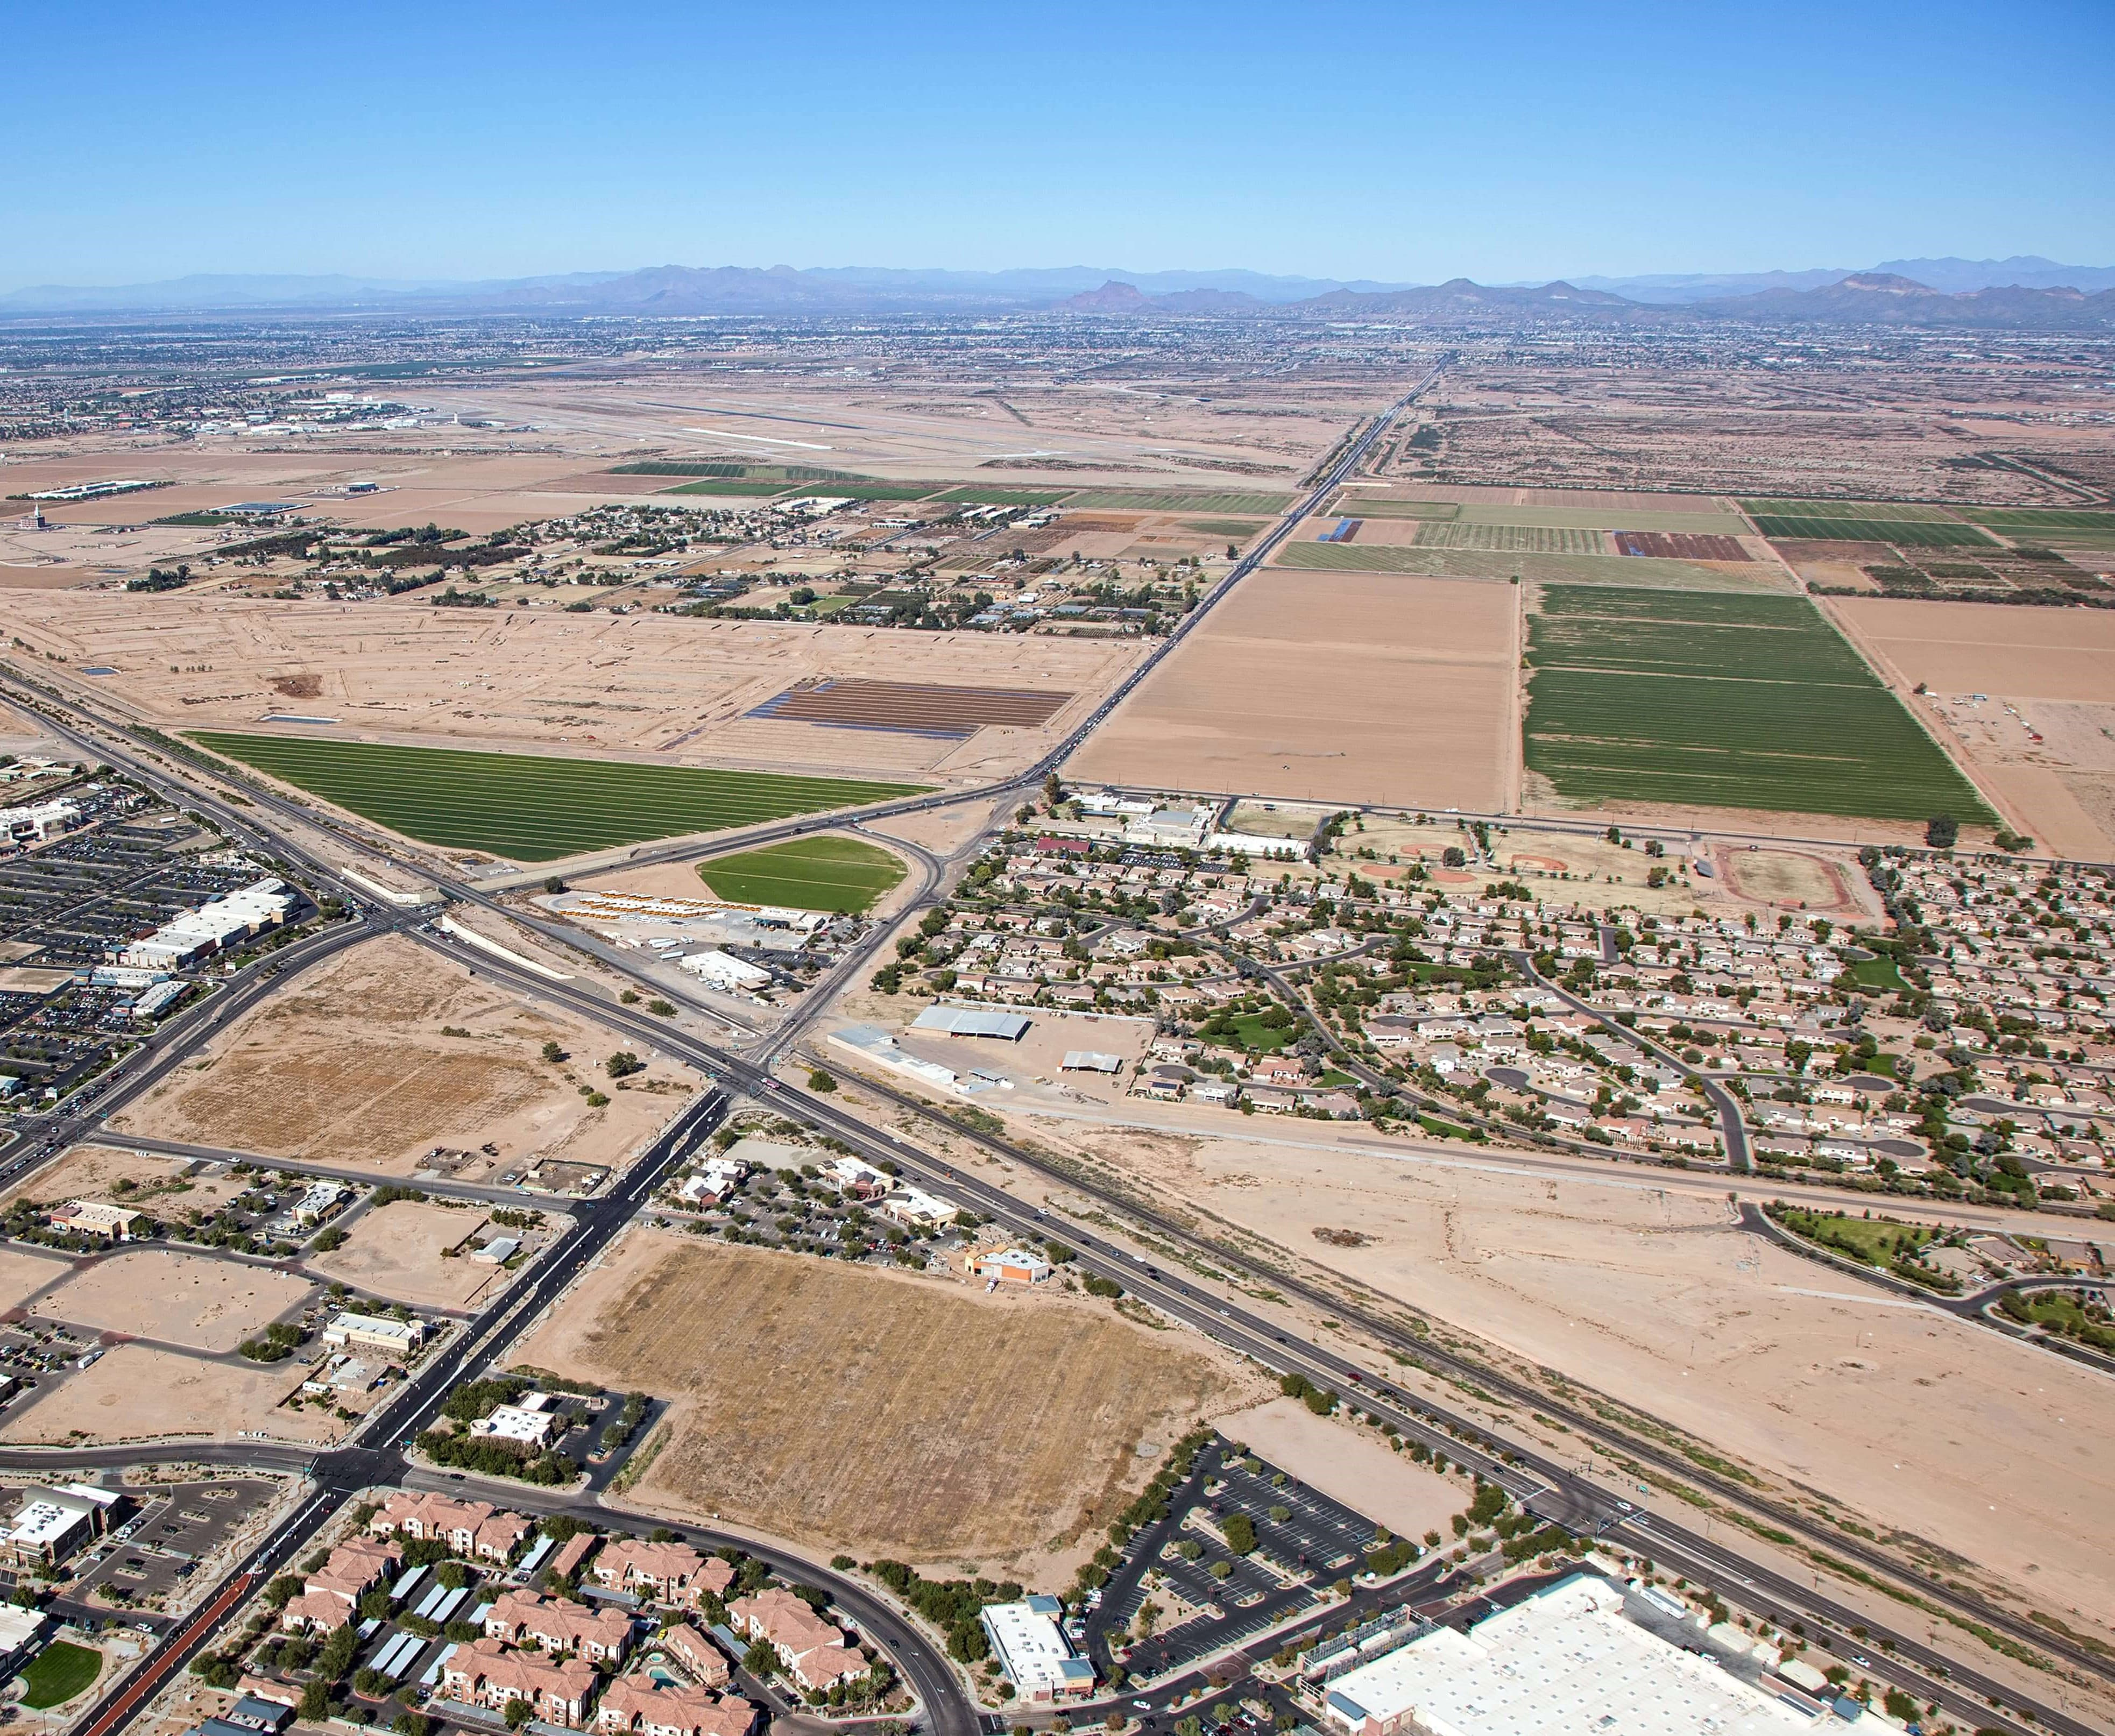 Growth-and-Development-in-the-east-valley-outside-Phoenix-Arizona-mincrop-min